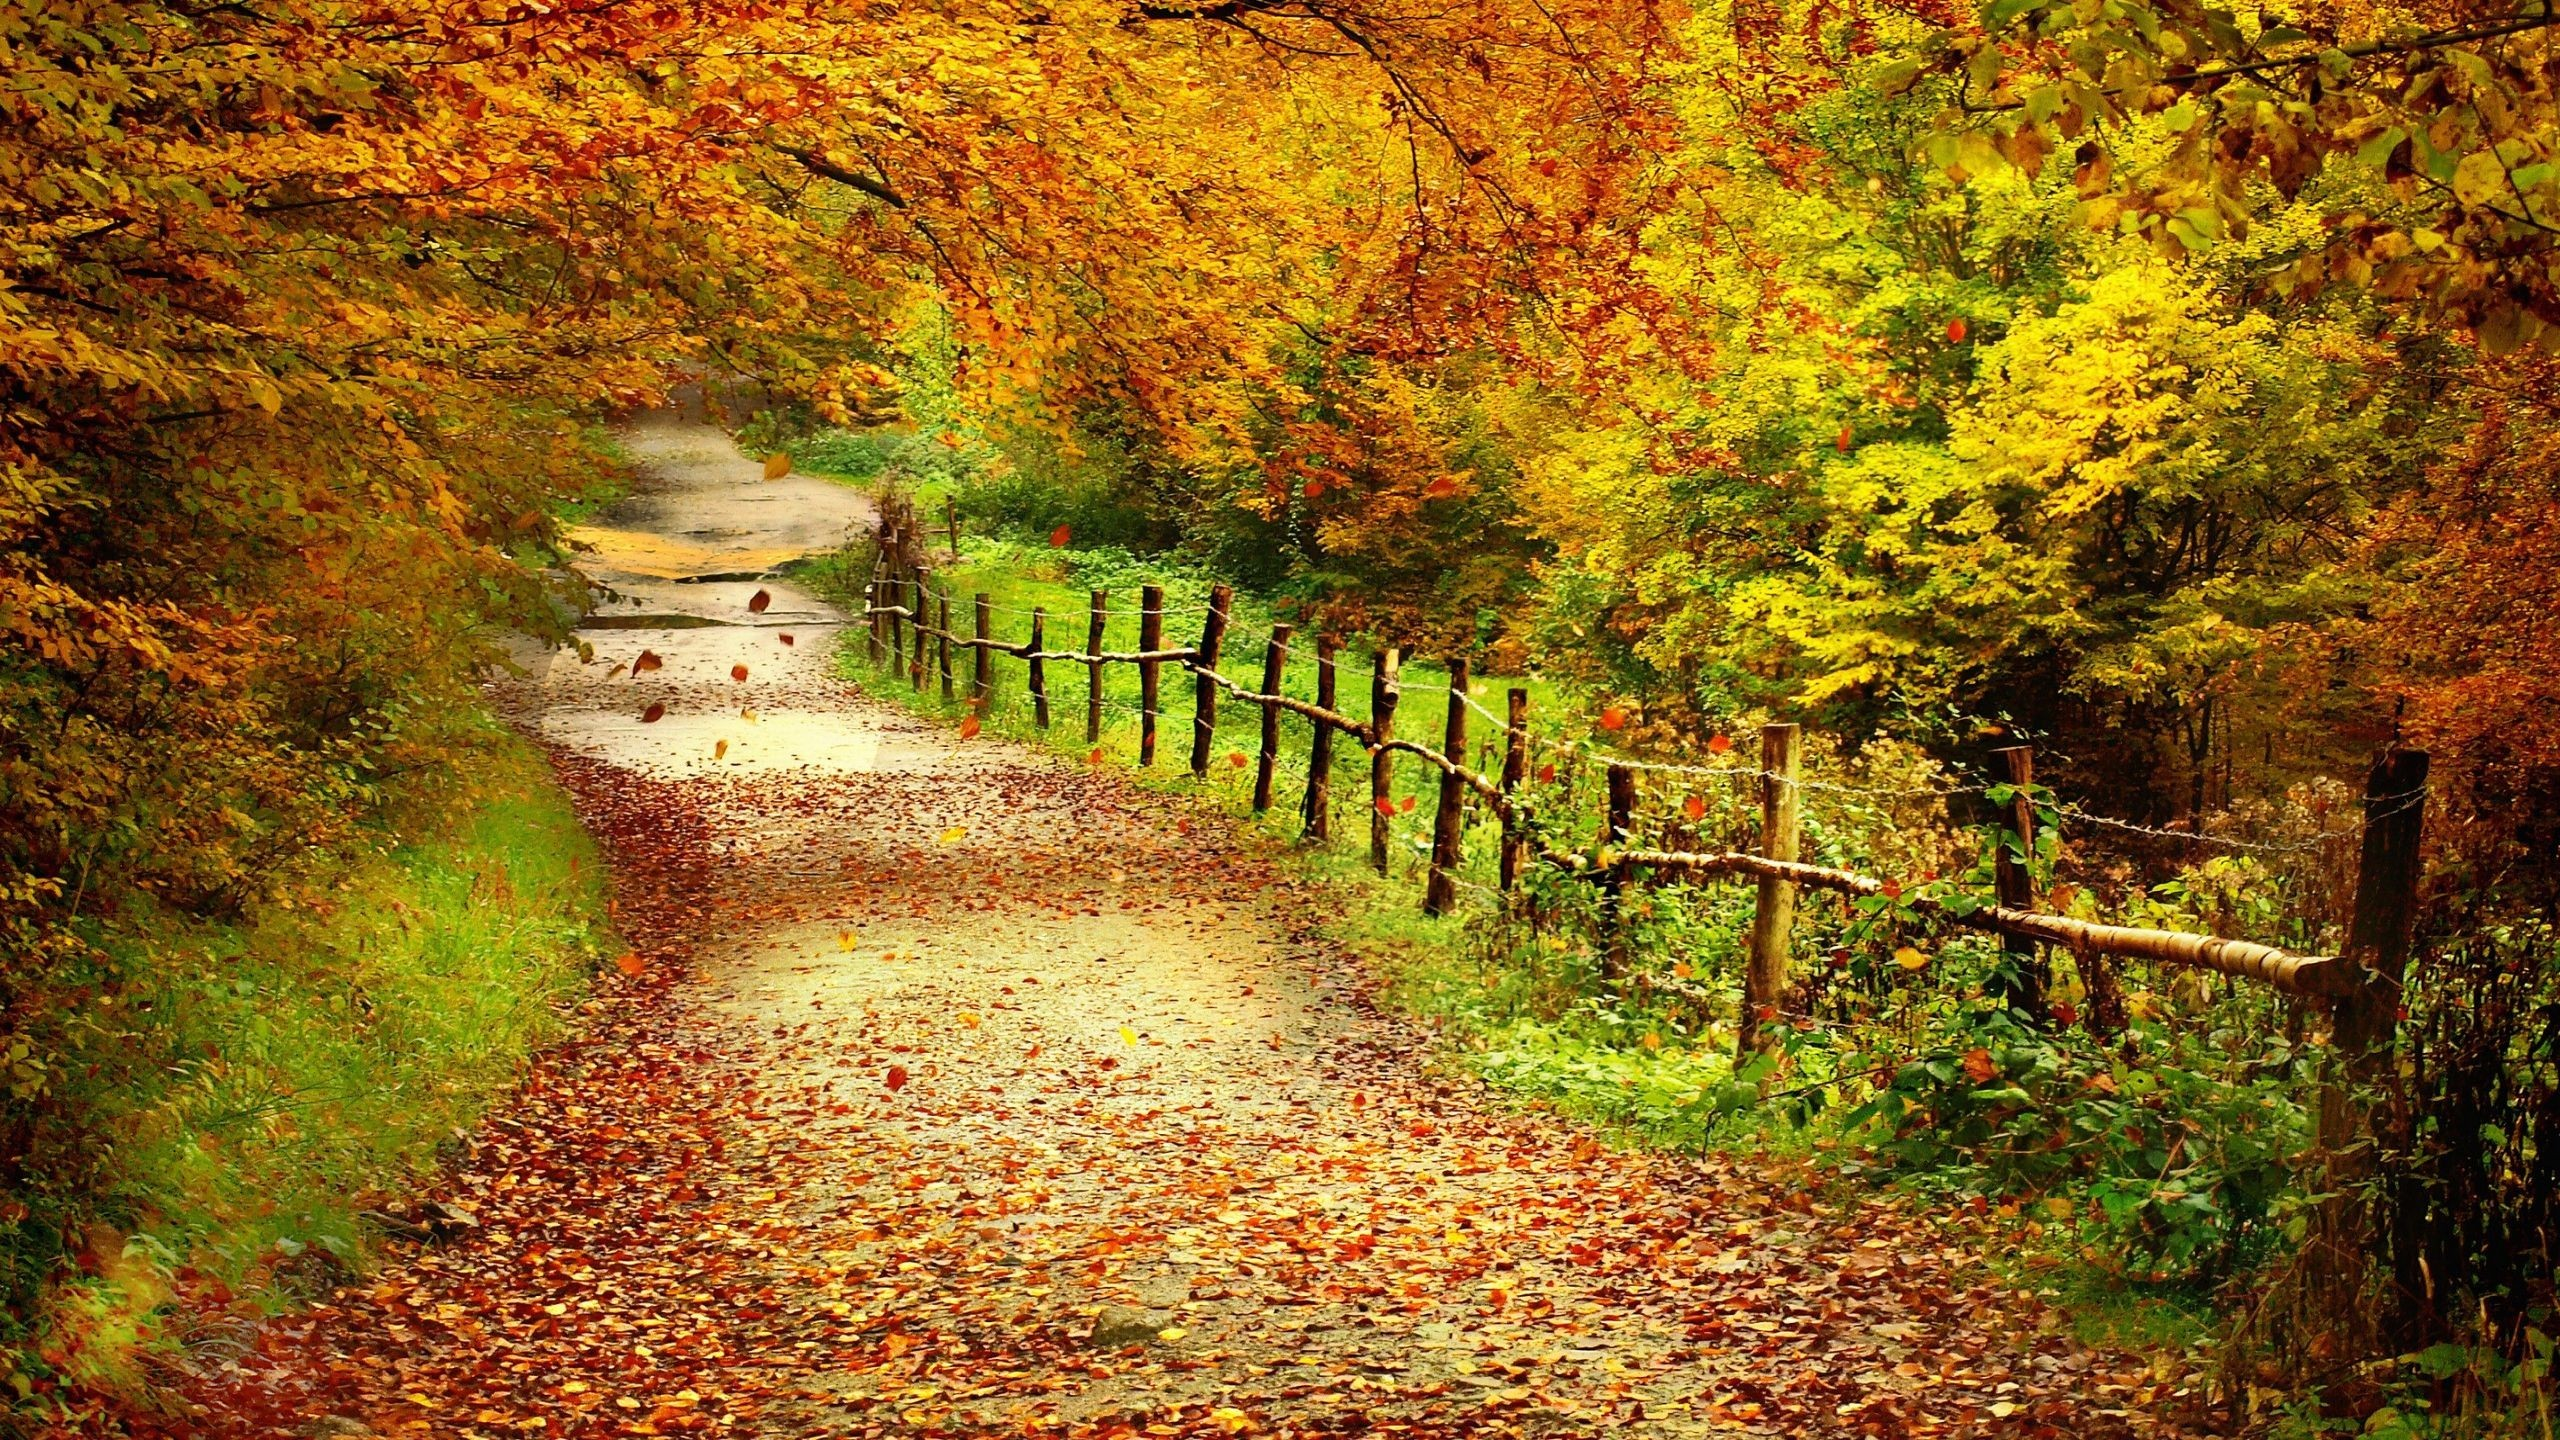 Autumn landscape wallpaper 69 images - Free landscape backgrounds ...